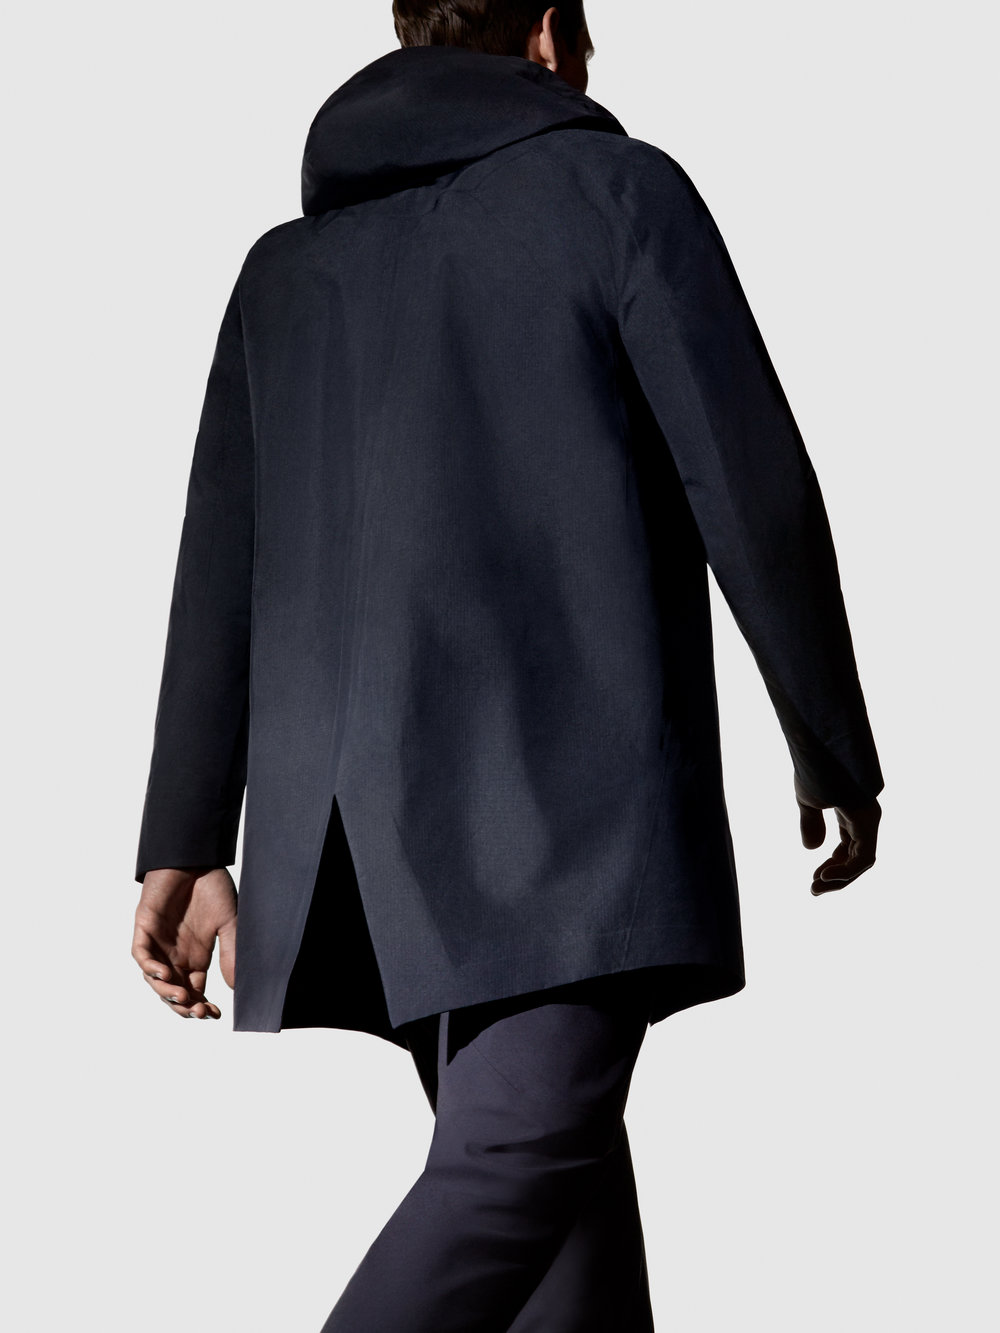 Arcteryx-Veilance-FW17-On-Model-Imagery-Monitor-Coat-02-Portrait-RGB.jpg